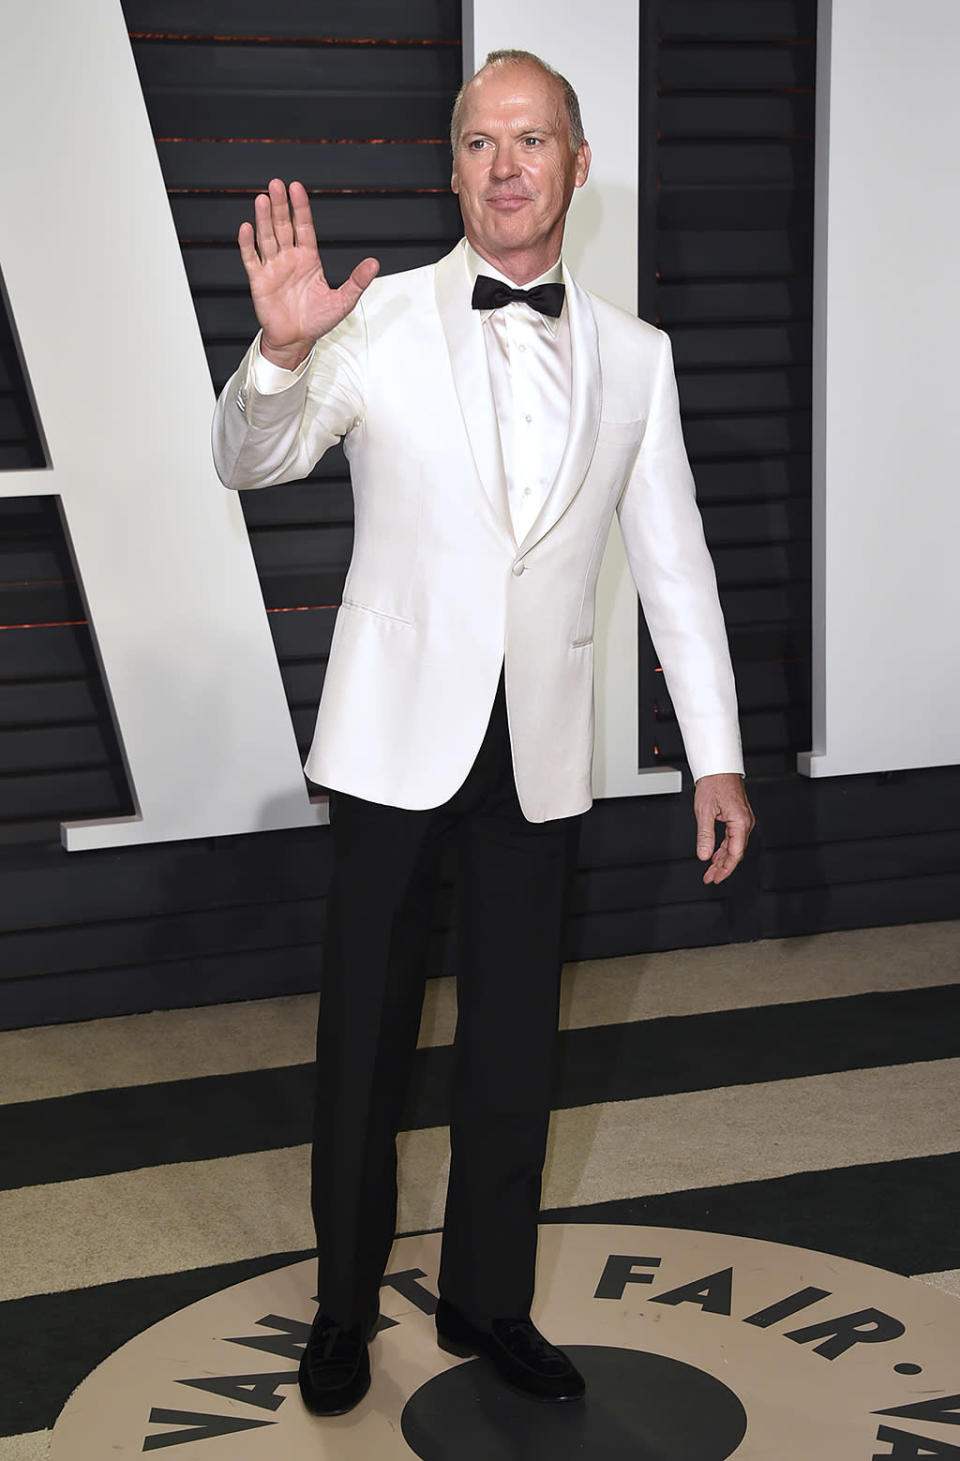 <p>Michael Keaton arrives at the Vanity Fair Oscar Party on Sunday, Feb. 26, 2017, in Beverly Hills, Calif. (Photo by Evan Agostini/Invision/AP) </p>